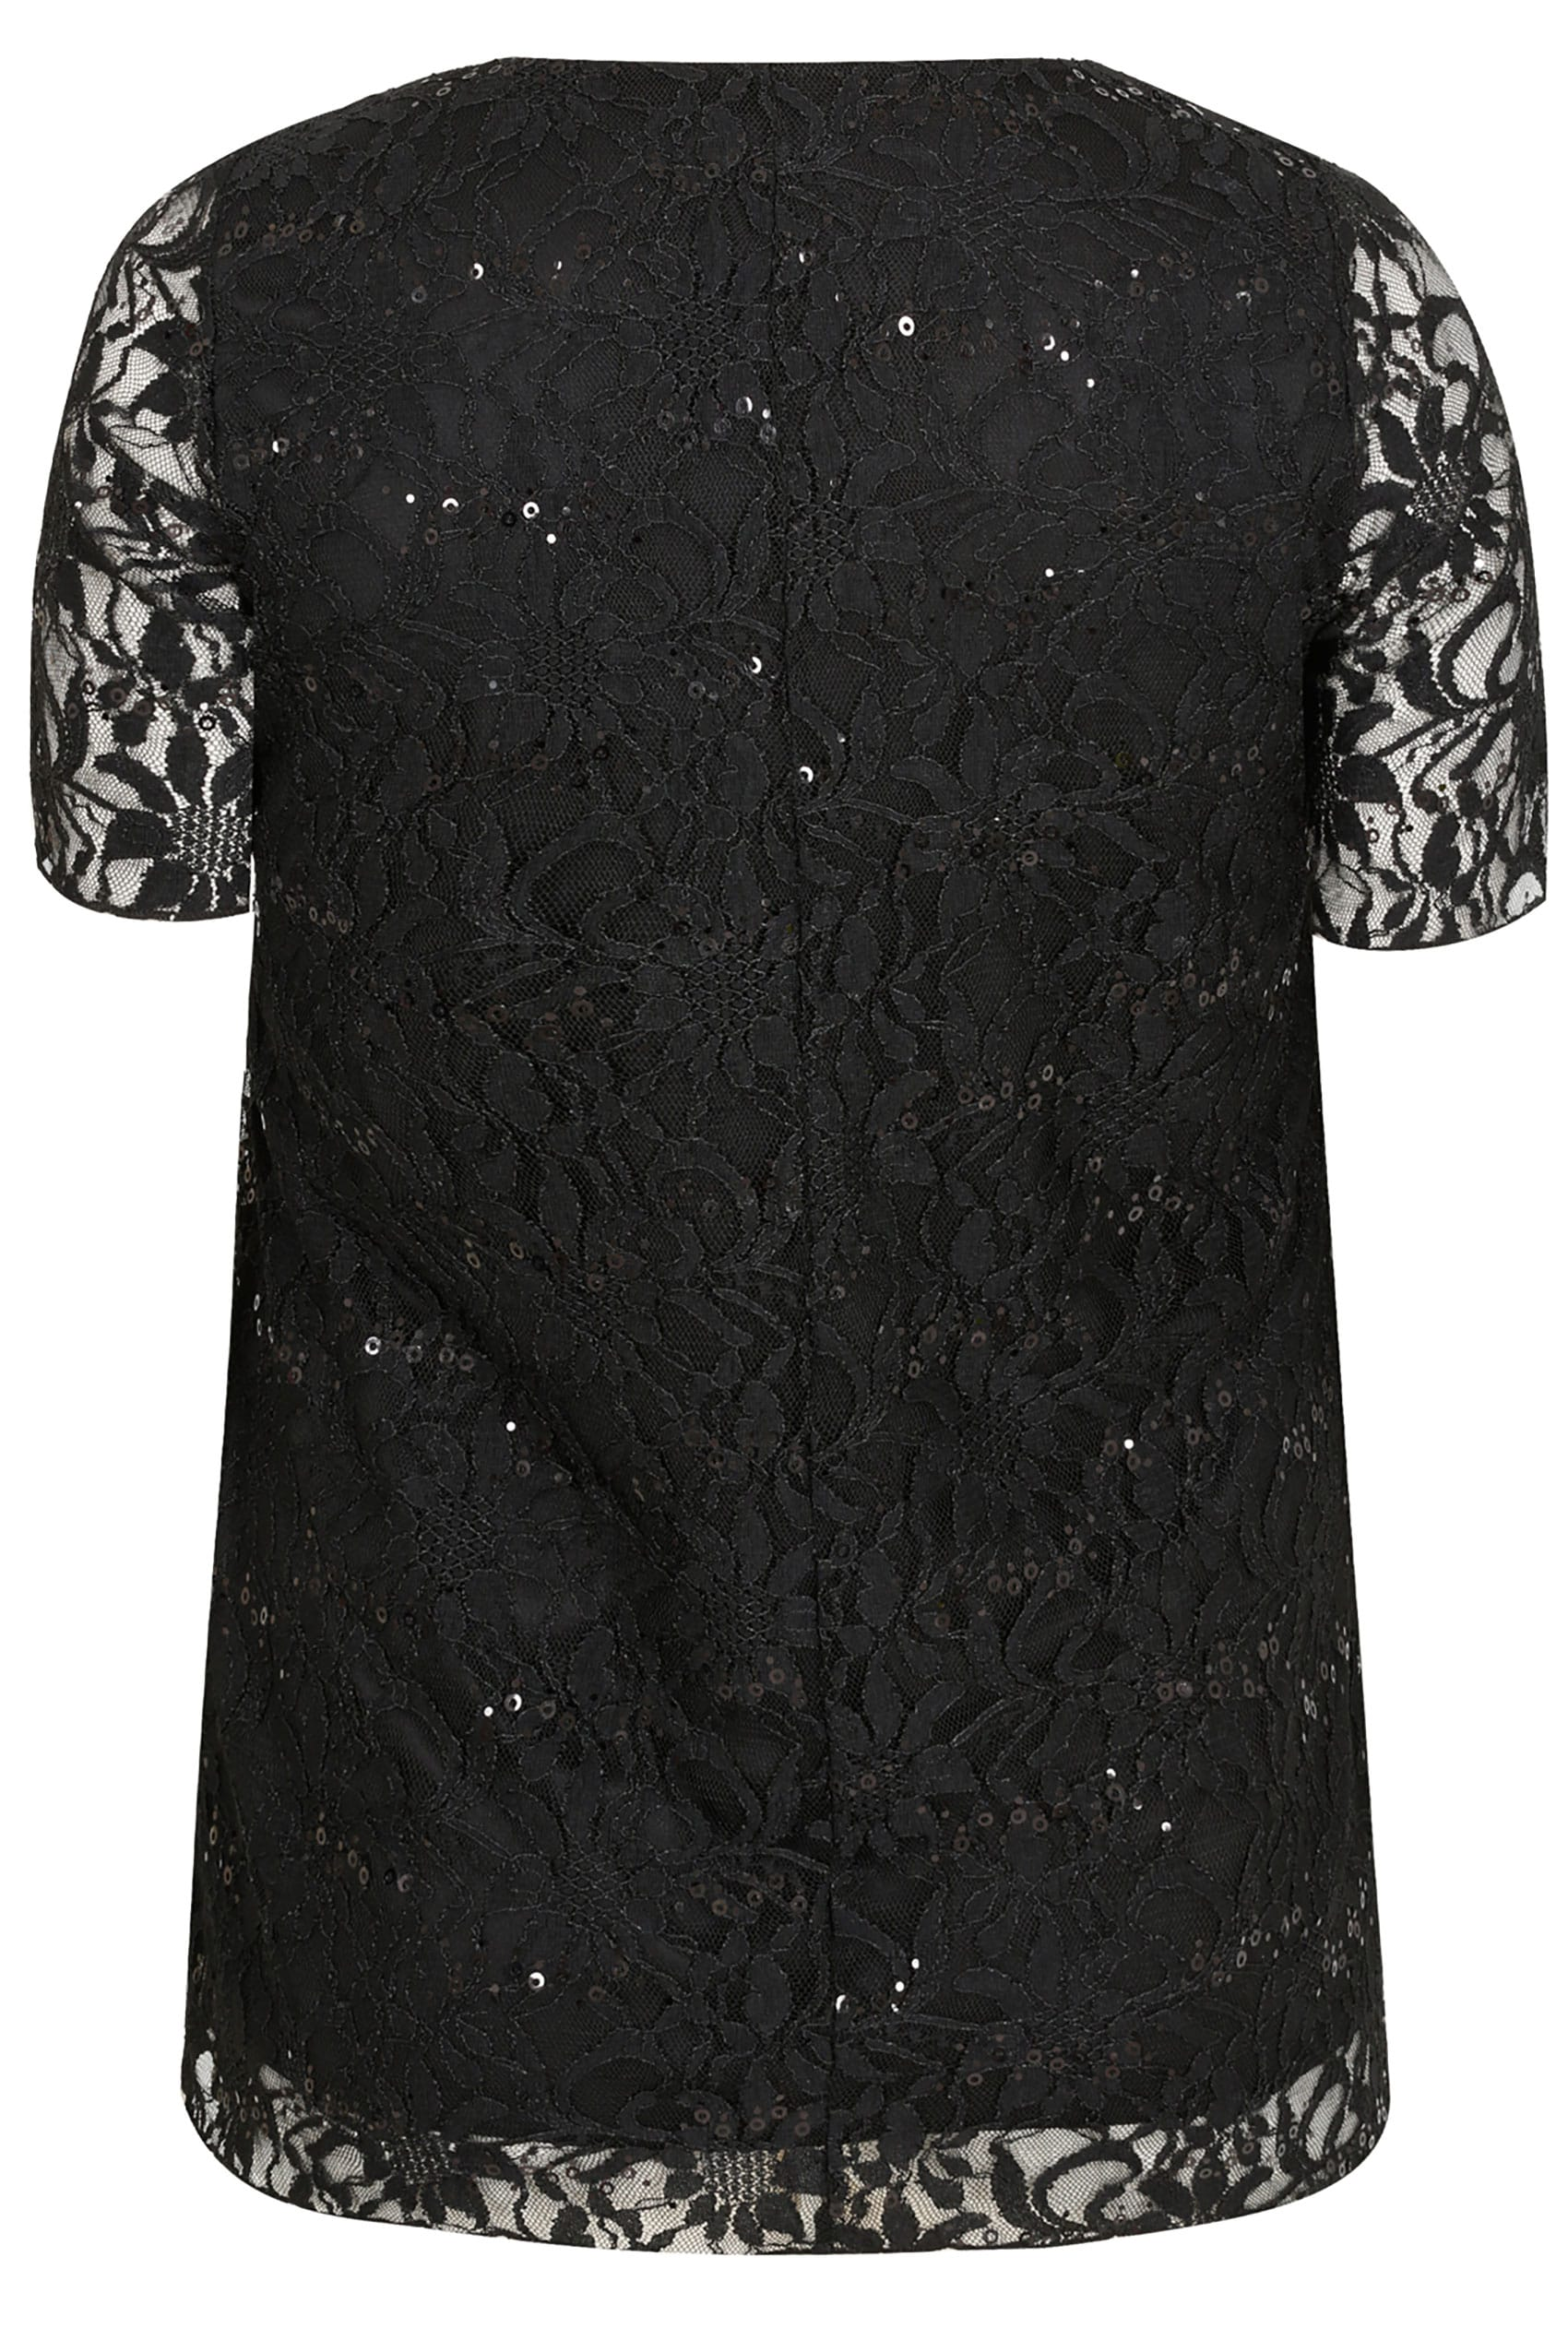 Shop for Black Lace Sleeve Top at Next Portugal. International shipping and returns available. Buy now!